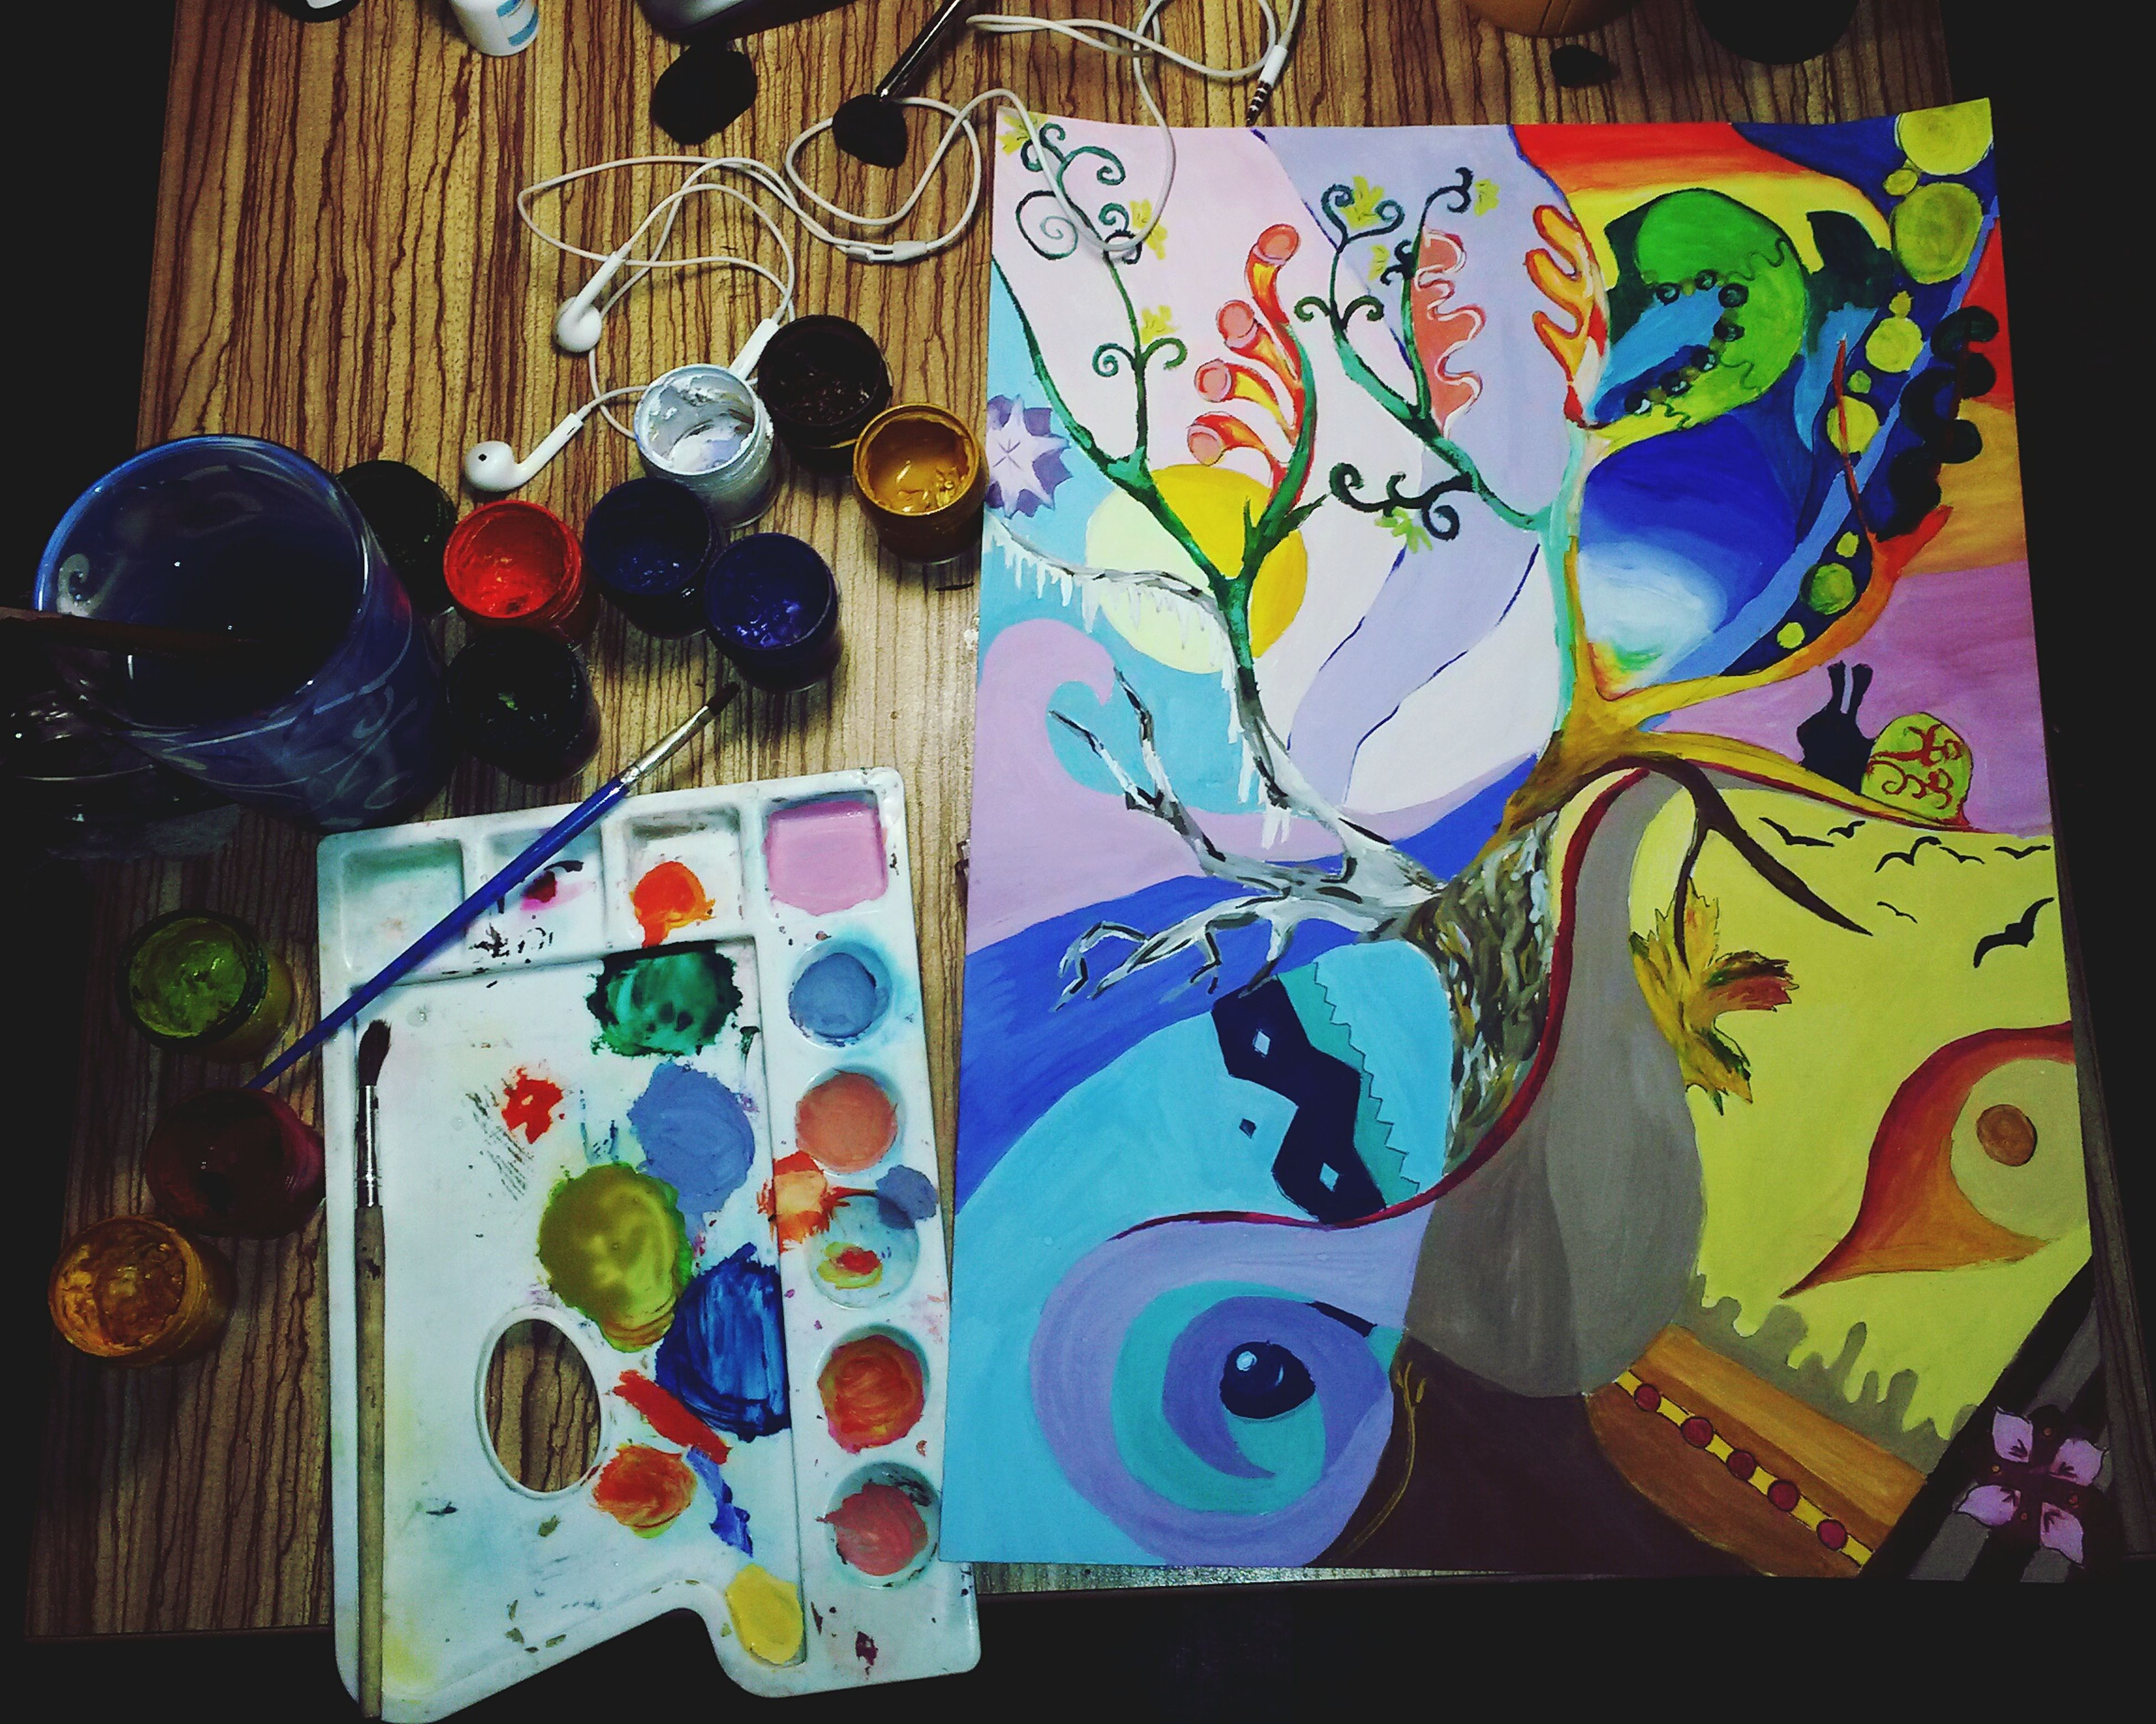 indoors, multi colored, creativity, art and craft, art, still life, table, variation, colorful, animal representation, no people, human representation, wood - material, floral pattern, decoration, close-up, high angle view, craft, design, choice